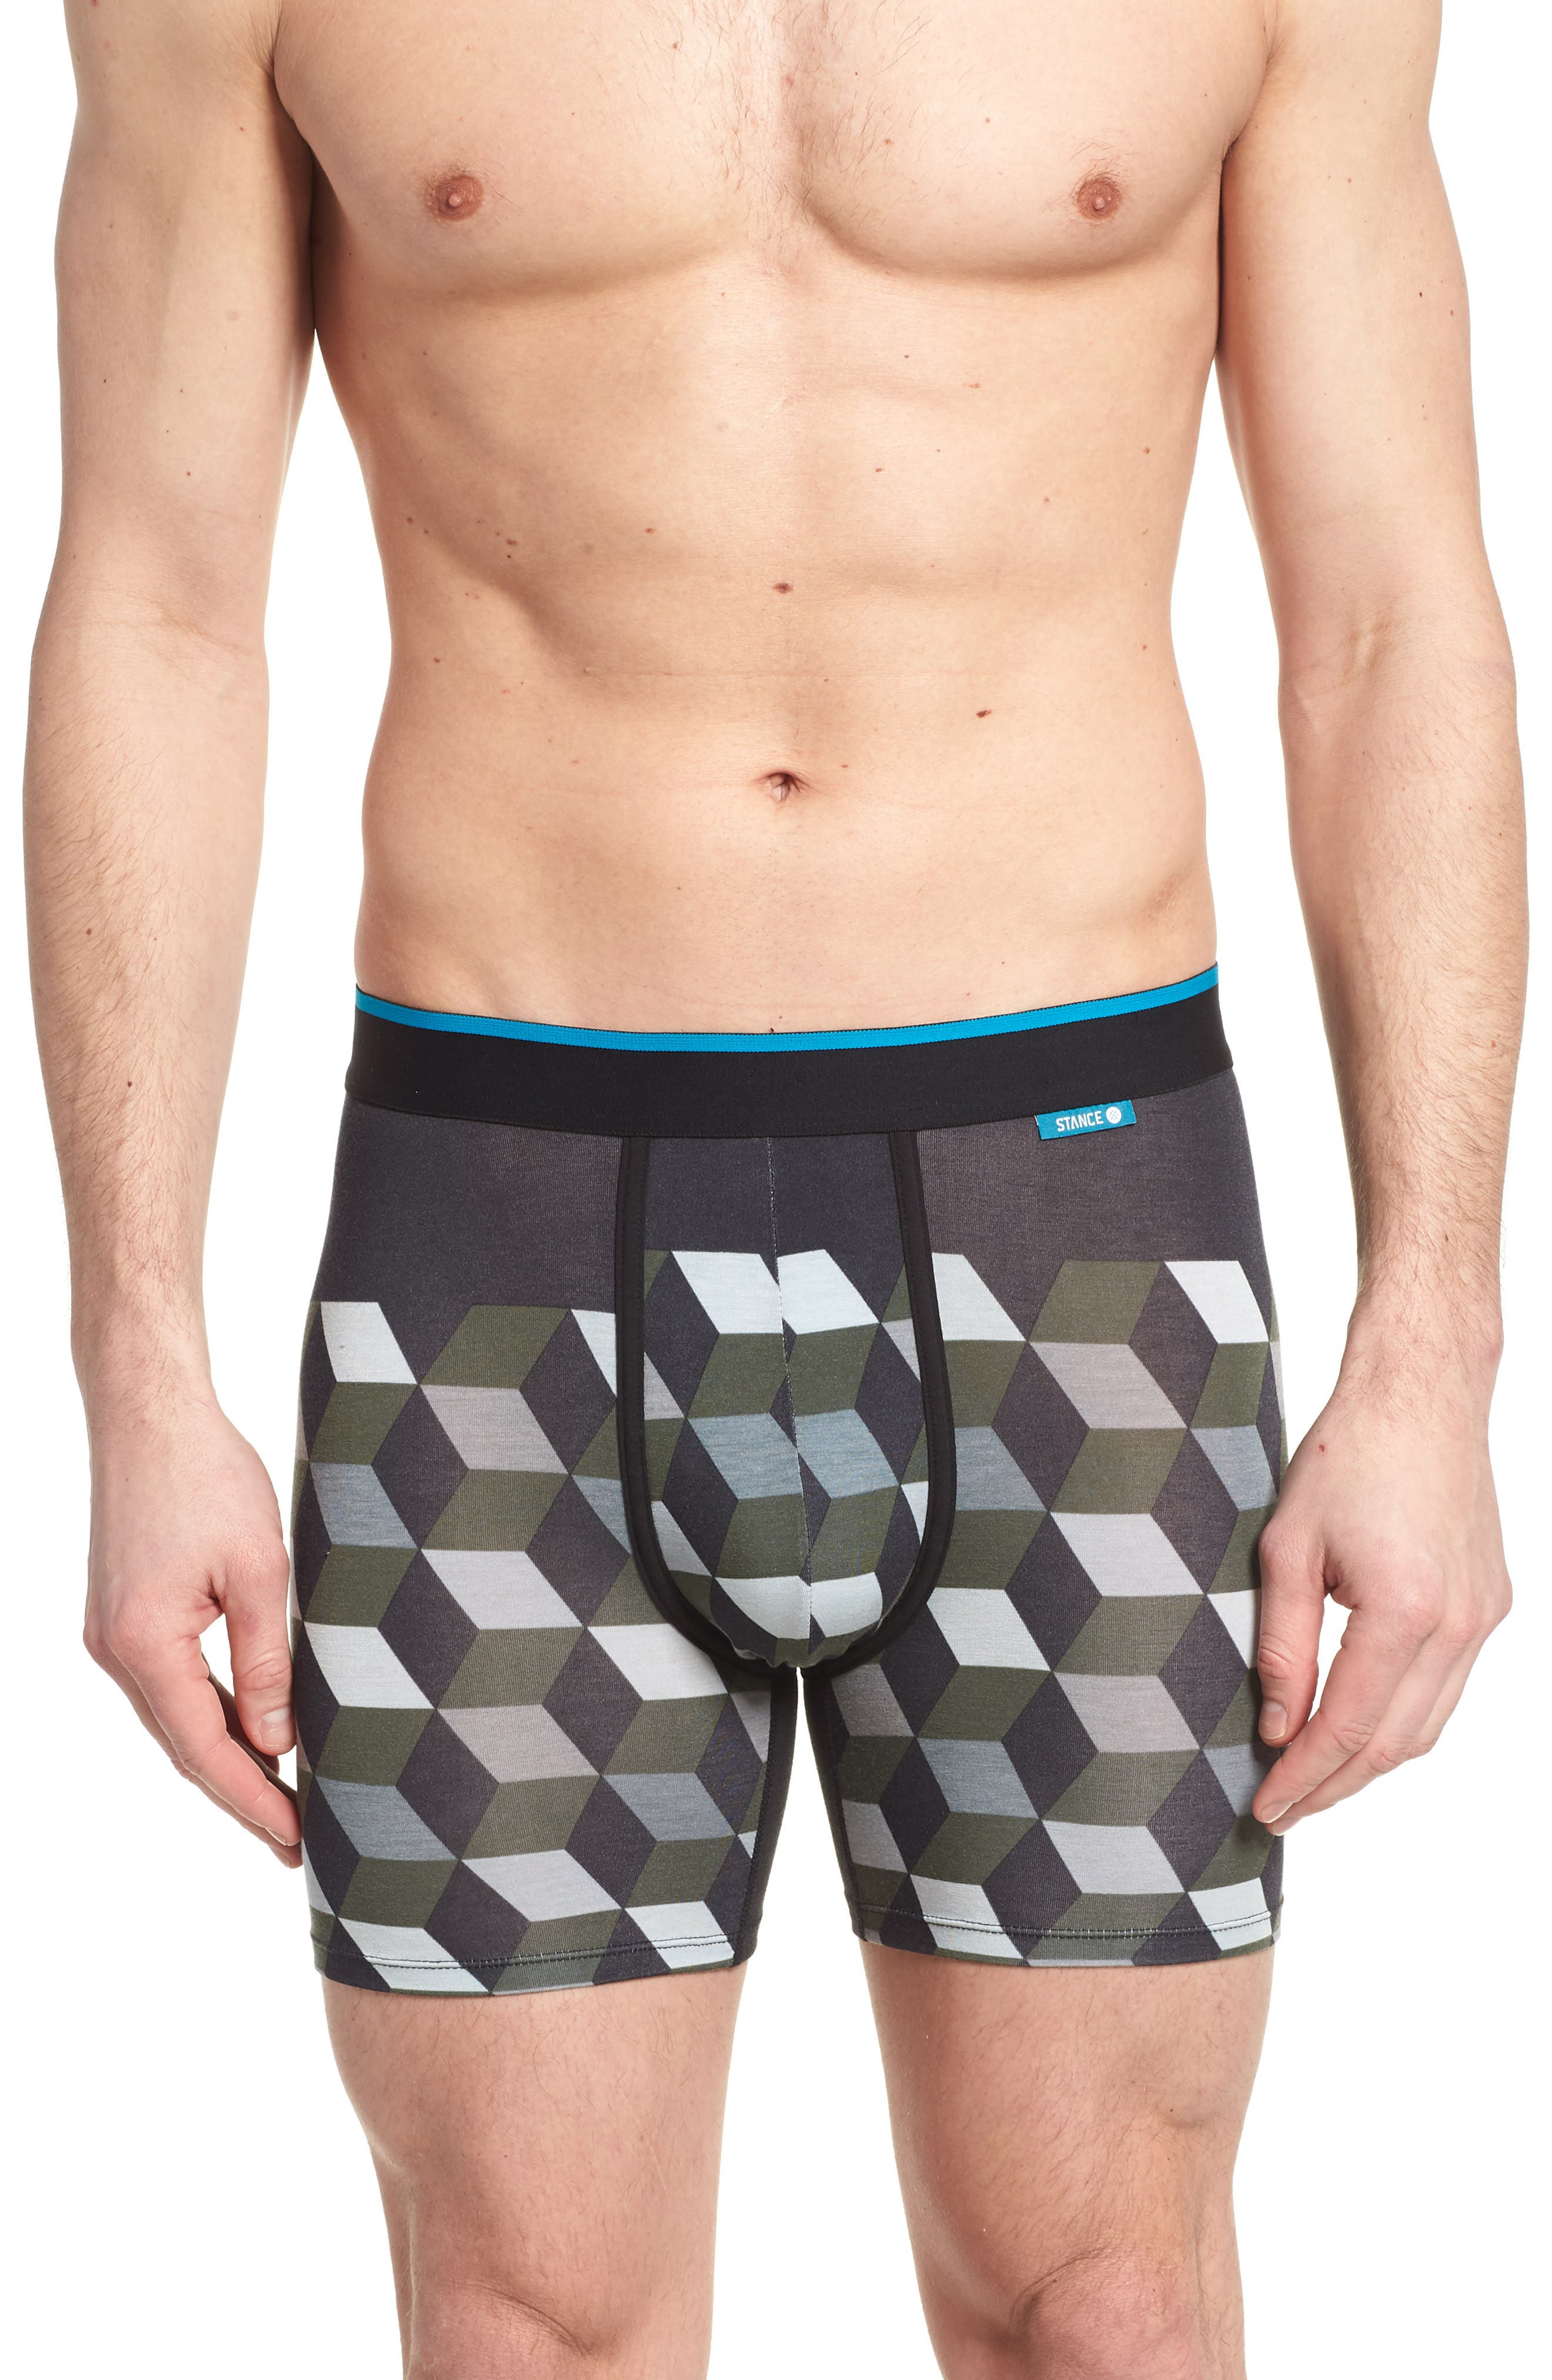 Cubes Wholester Boxer Briefs,                         Main,                         color, Grey